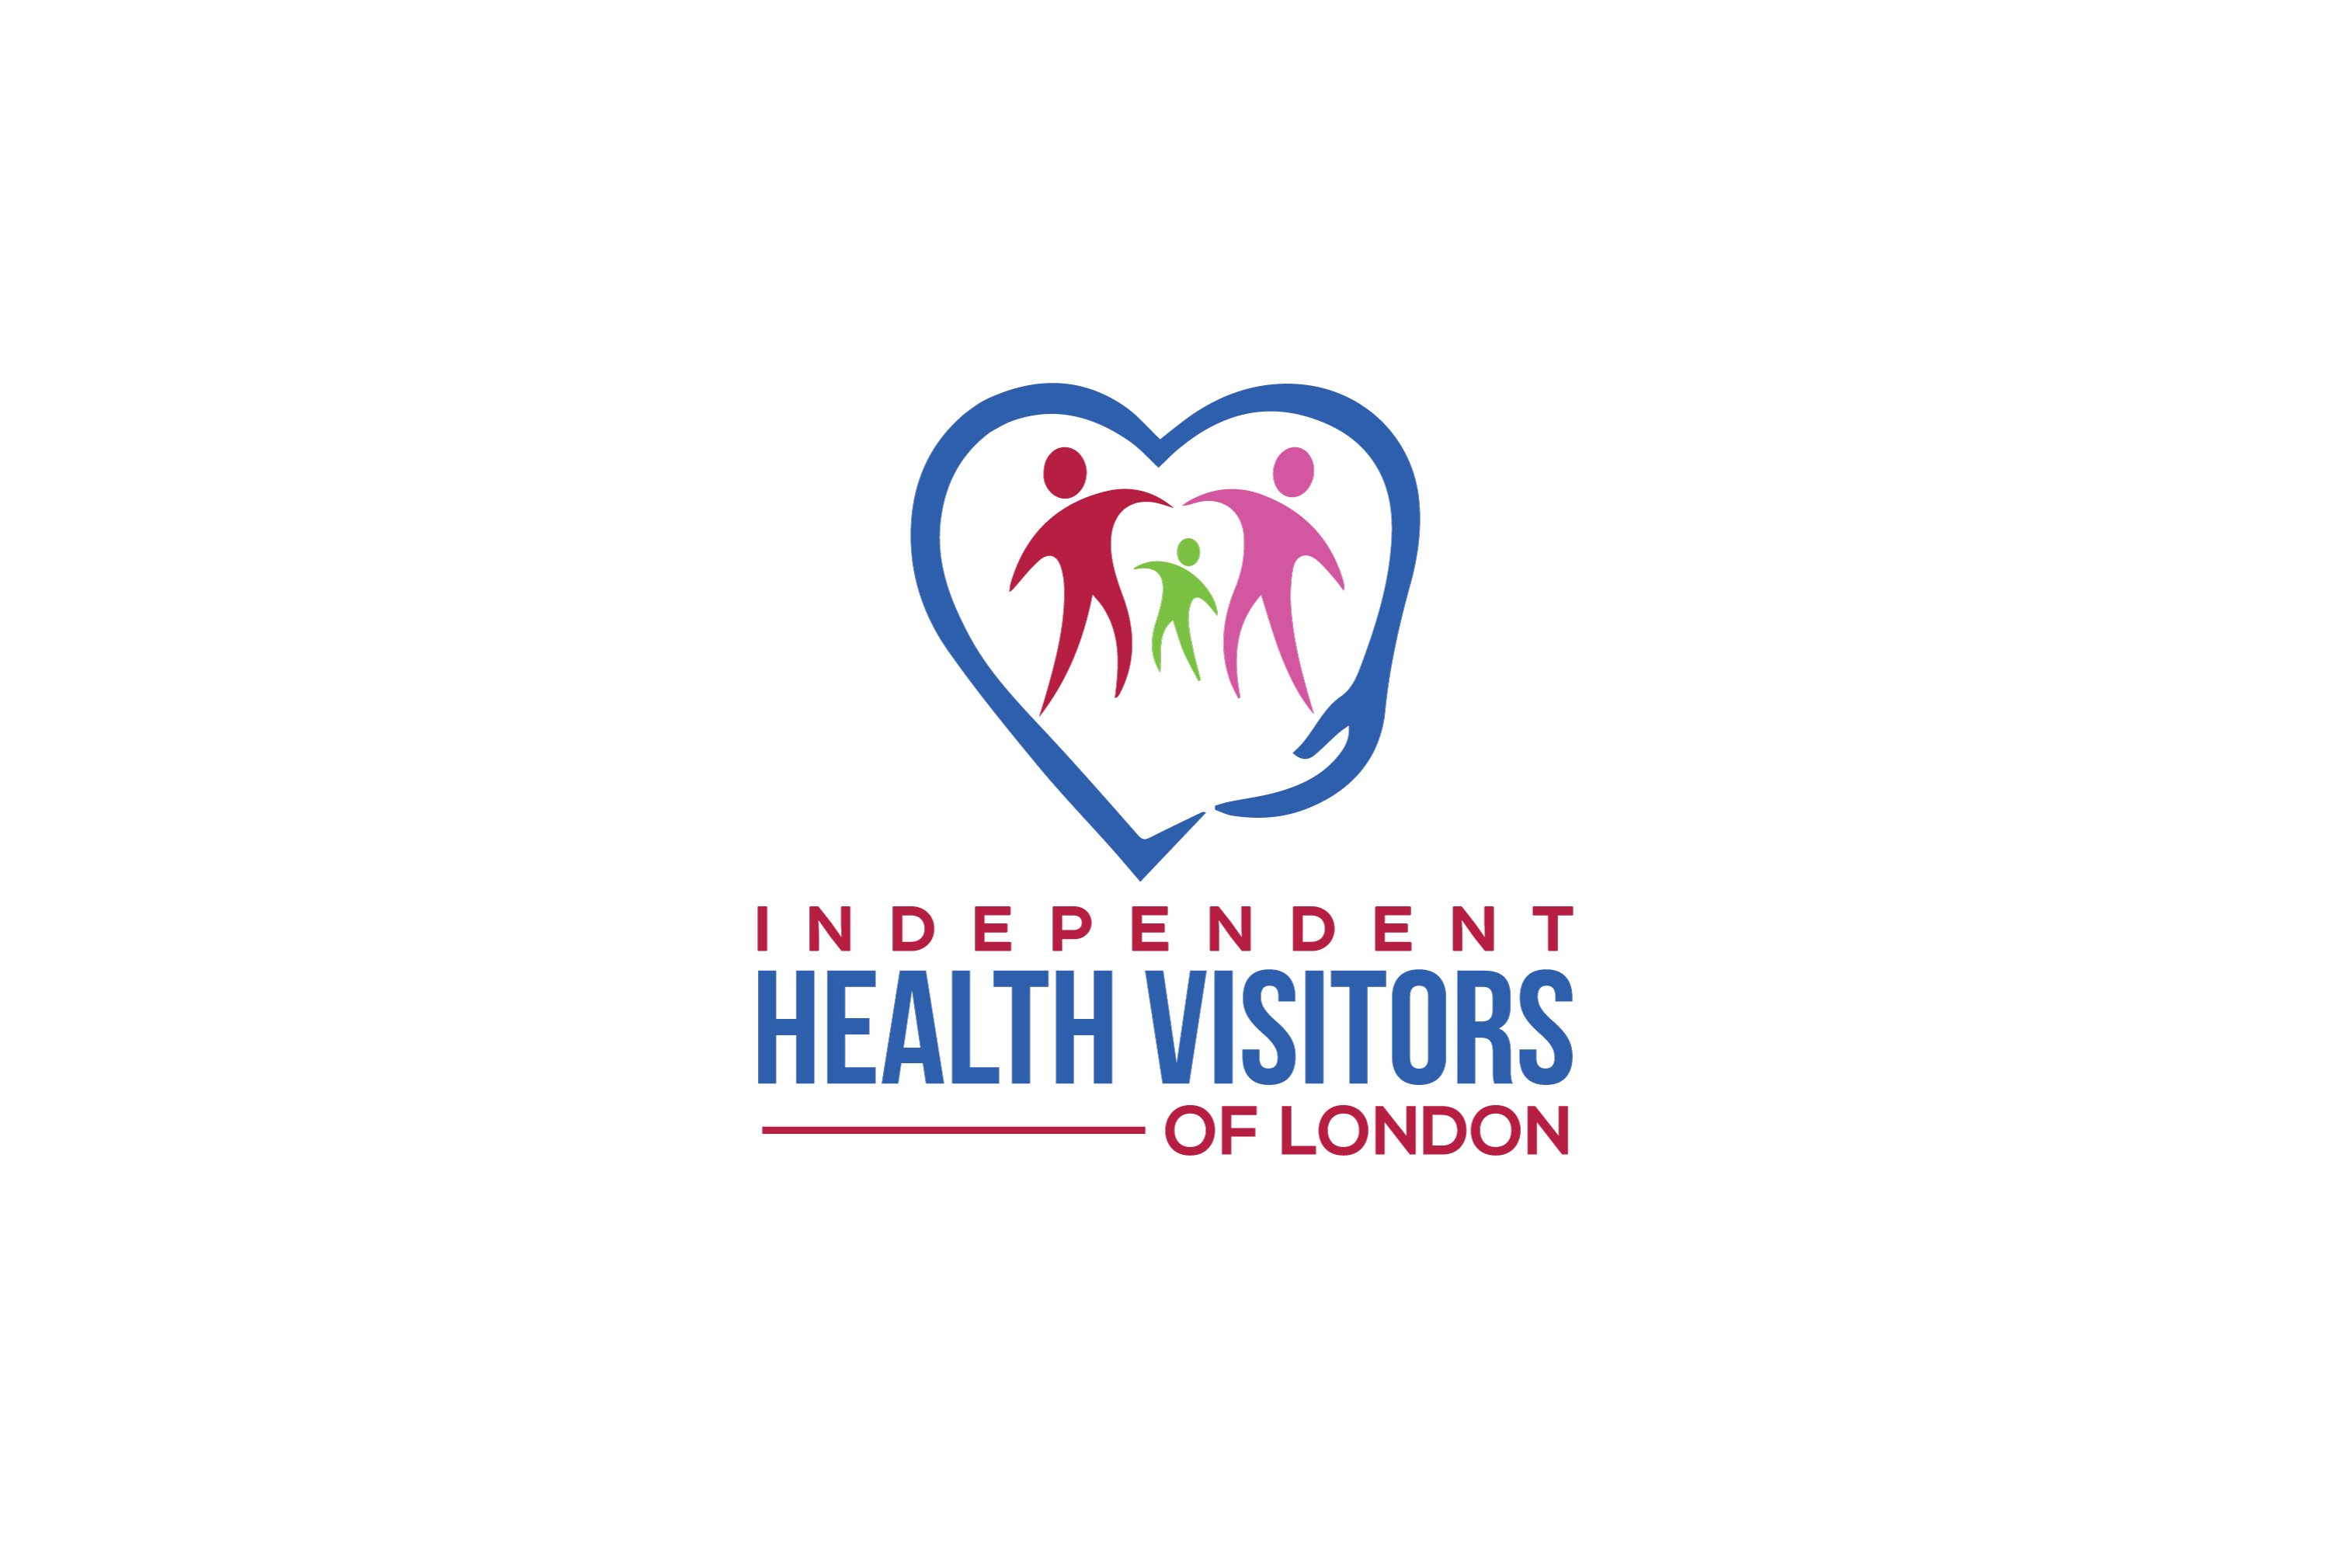 Independent Health Visitor of London